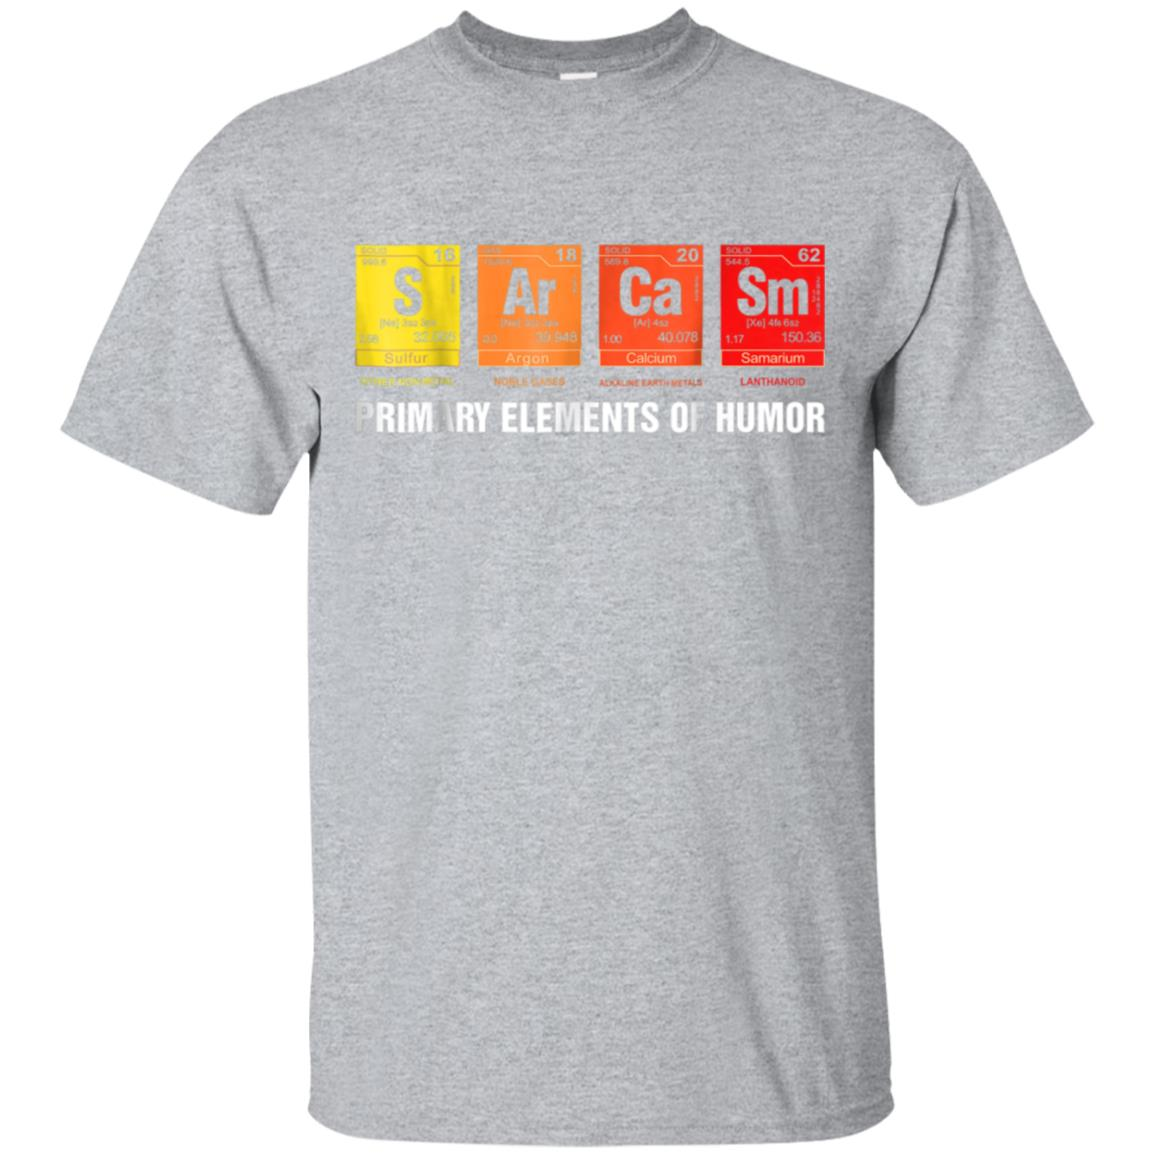 d267cd80 Awesome science t shirt sarcasm s ar ca sm primary elements of humor ...